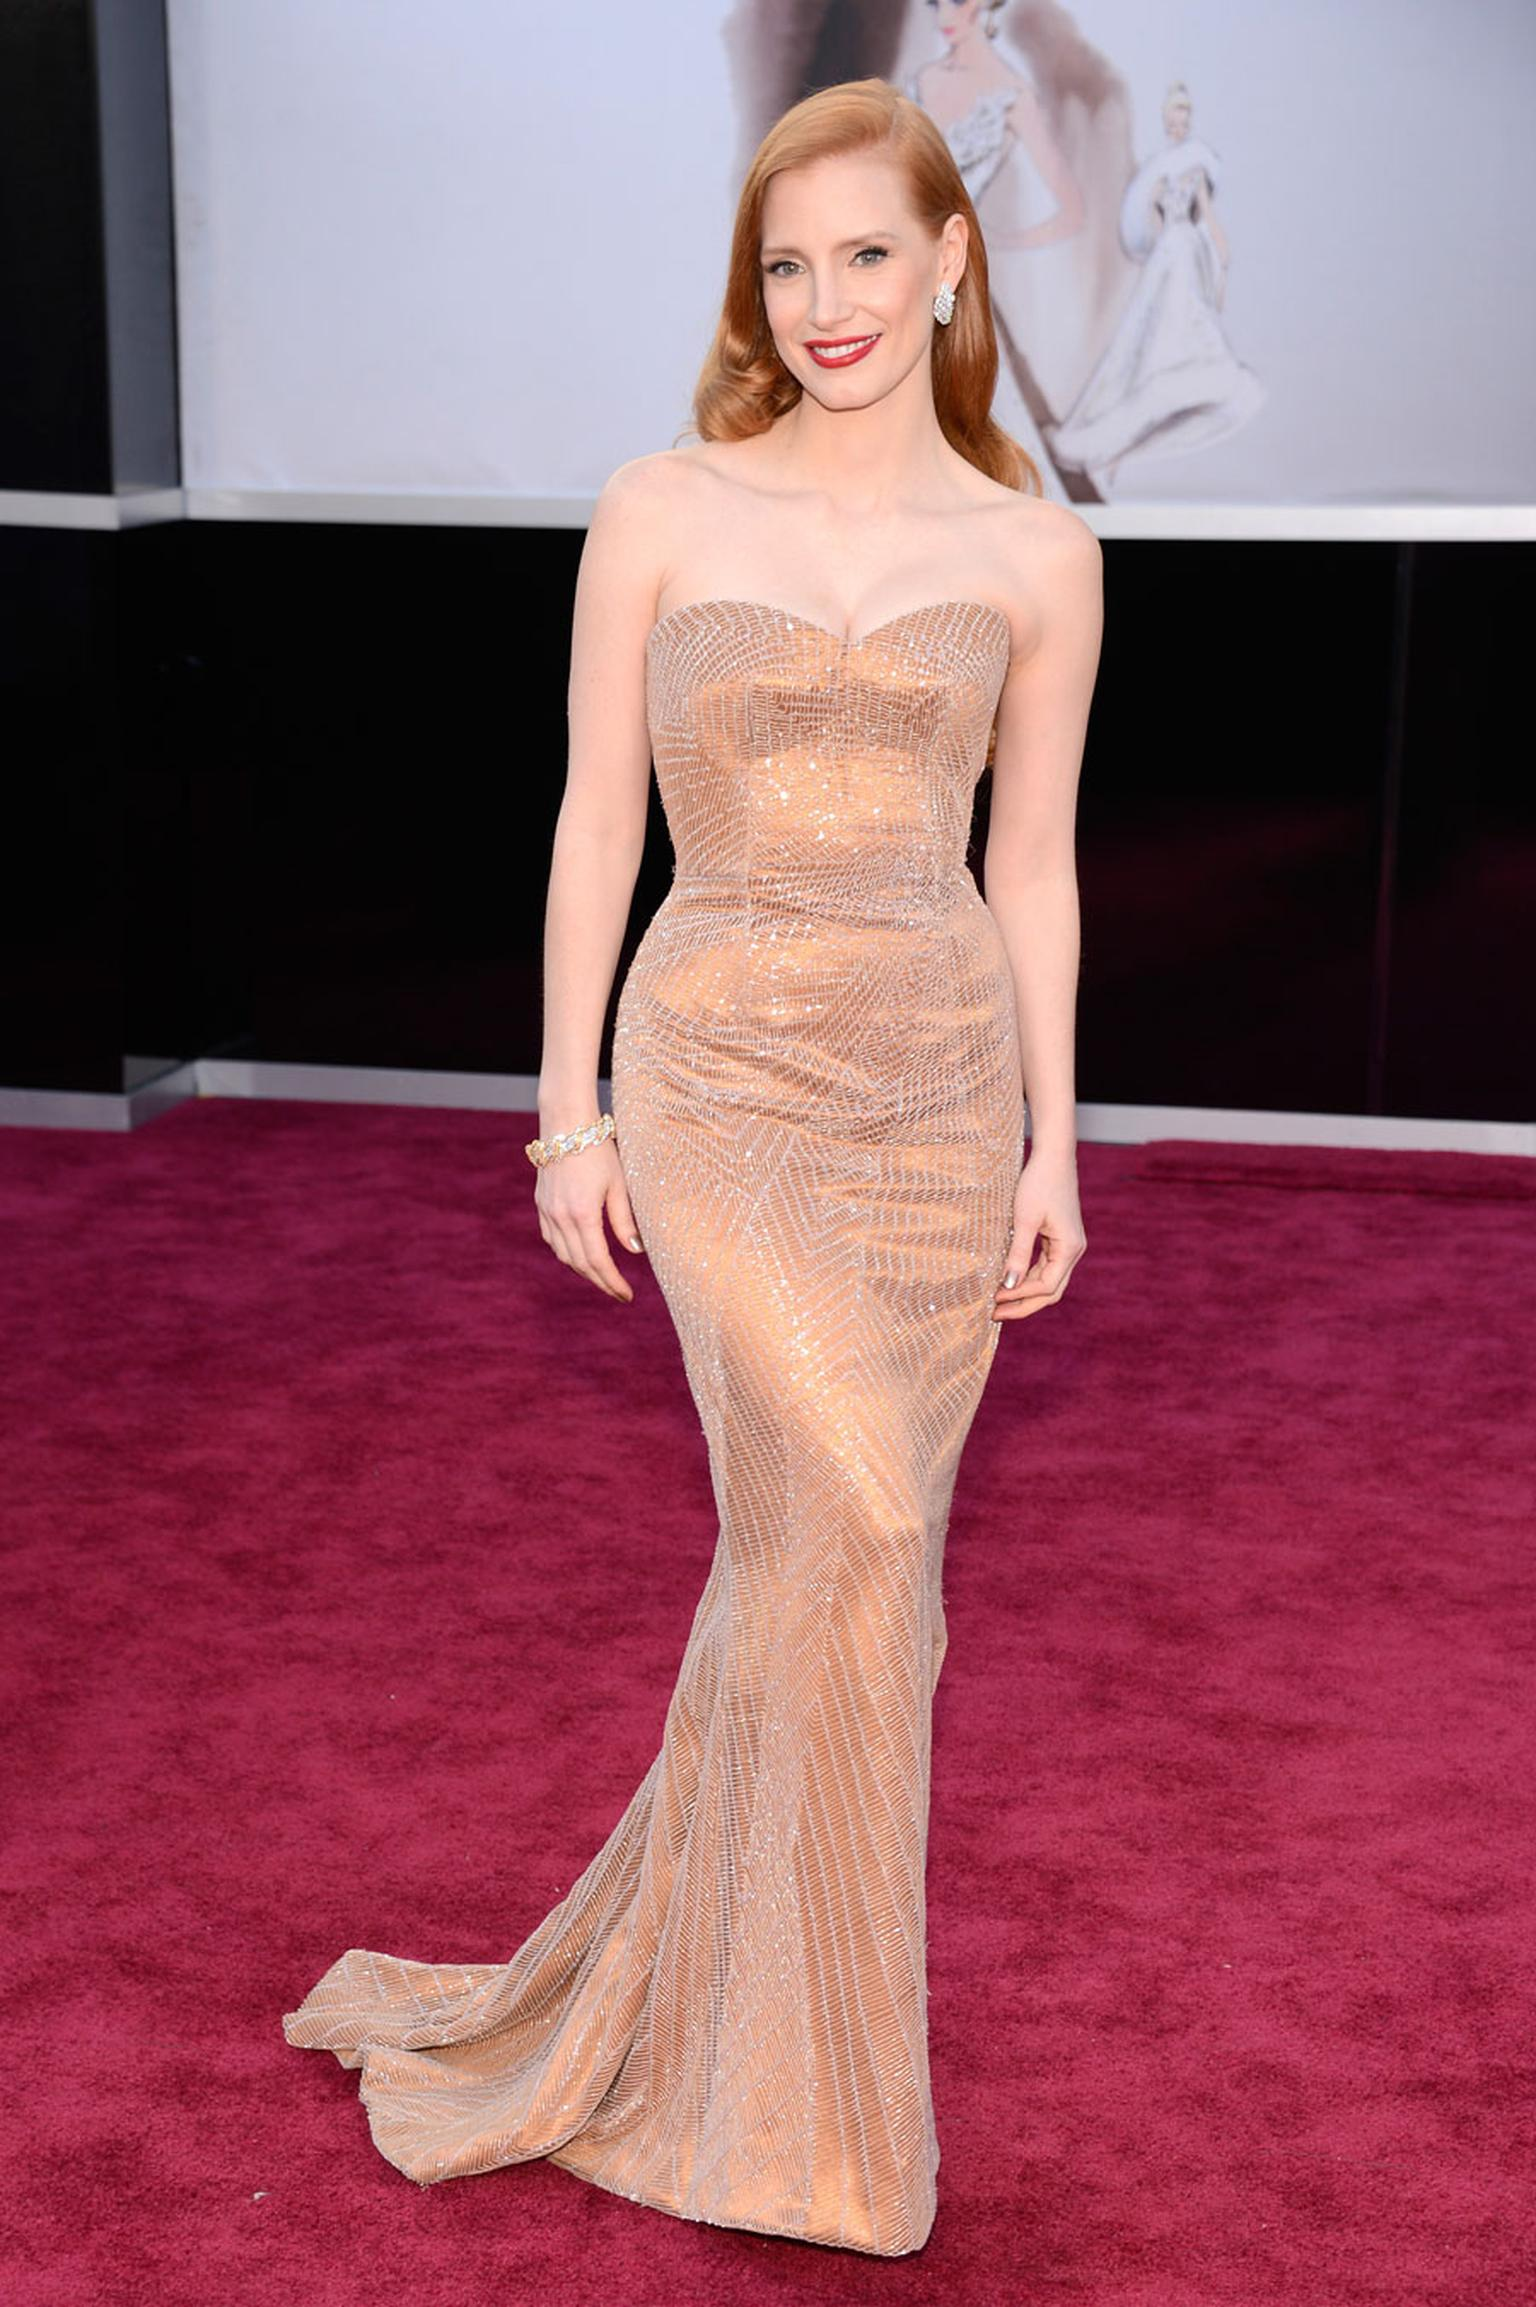 Best Actress nominee at the Oscars 2013, Jessica Chastain, in vintage 1960s Harry Winston diamond earrings and diamond and gold bracelet